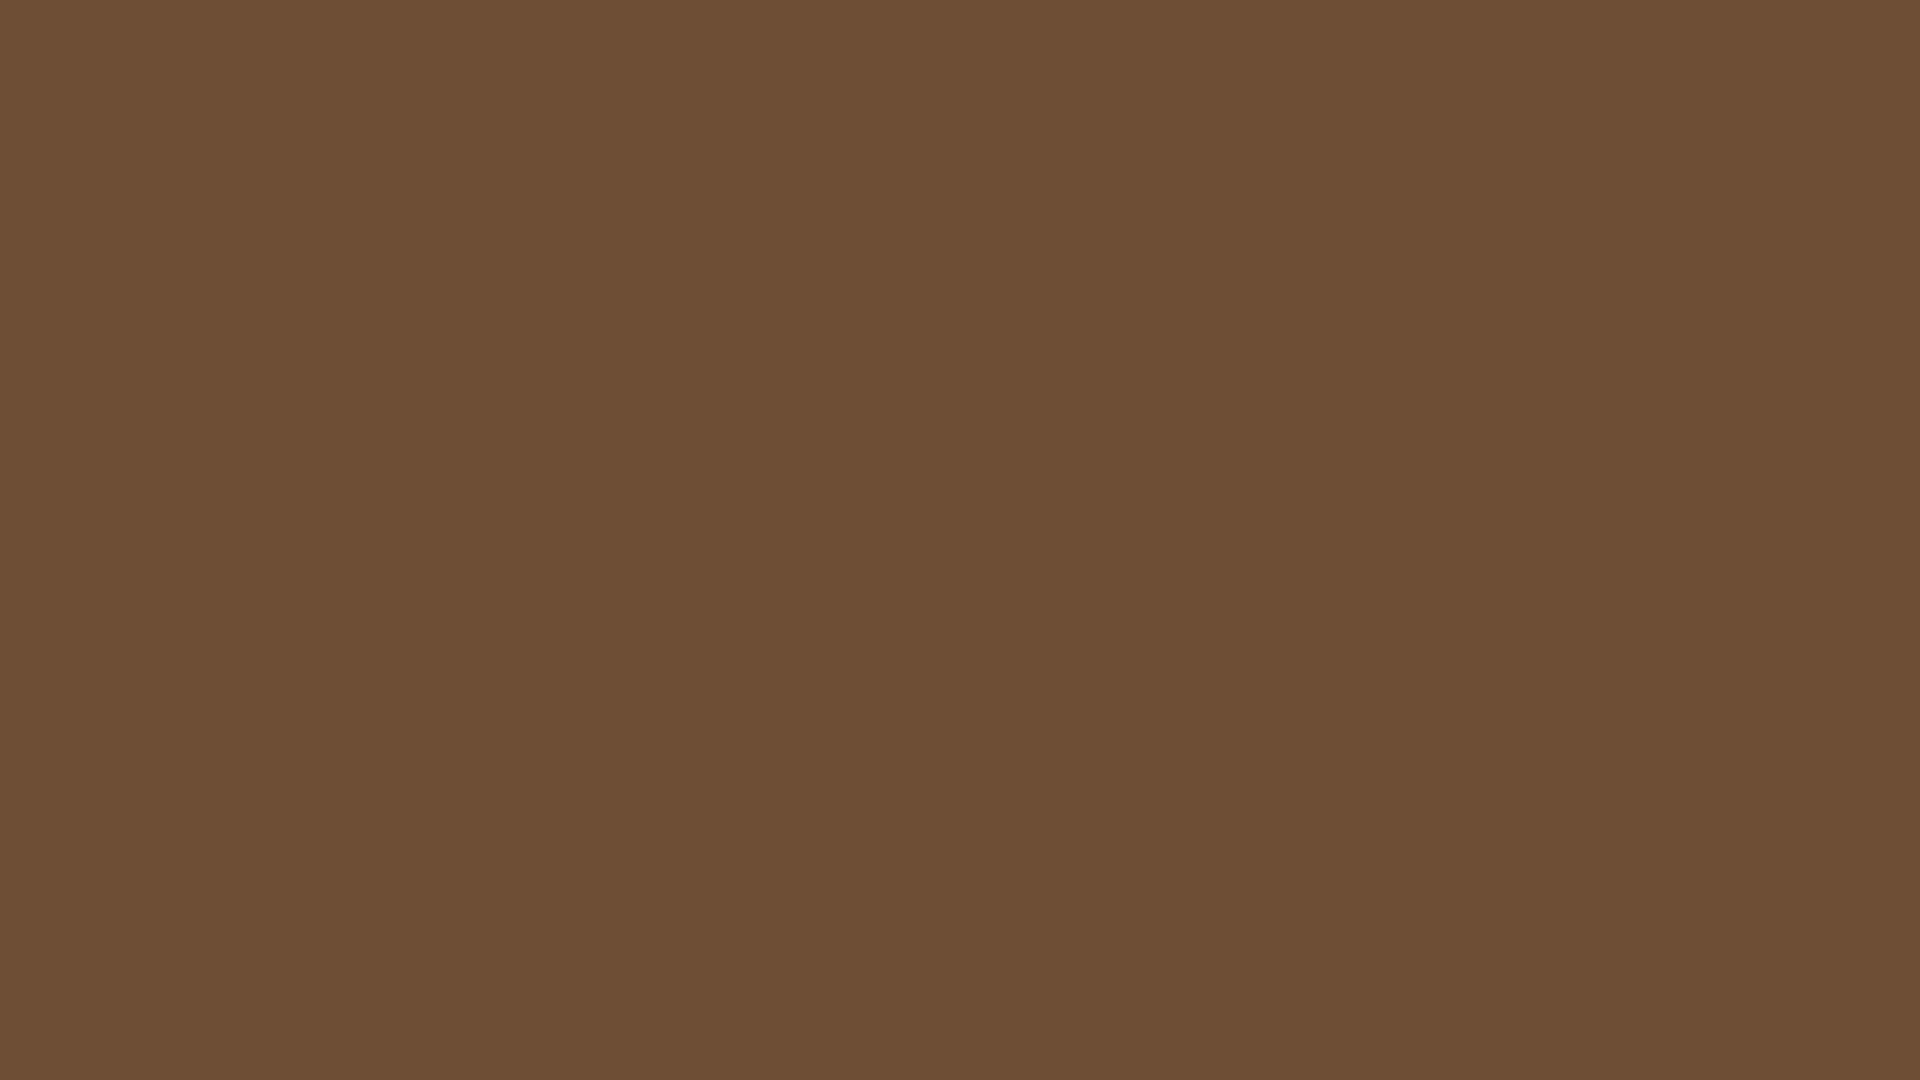 1920x1080 Coffee Solid Color Background